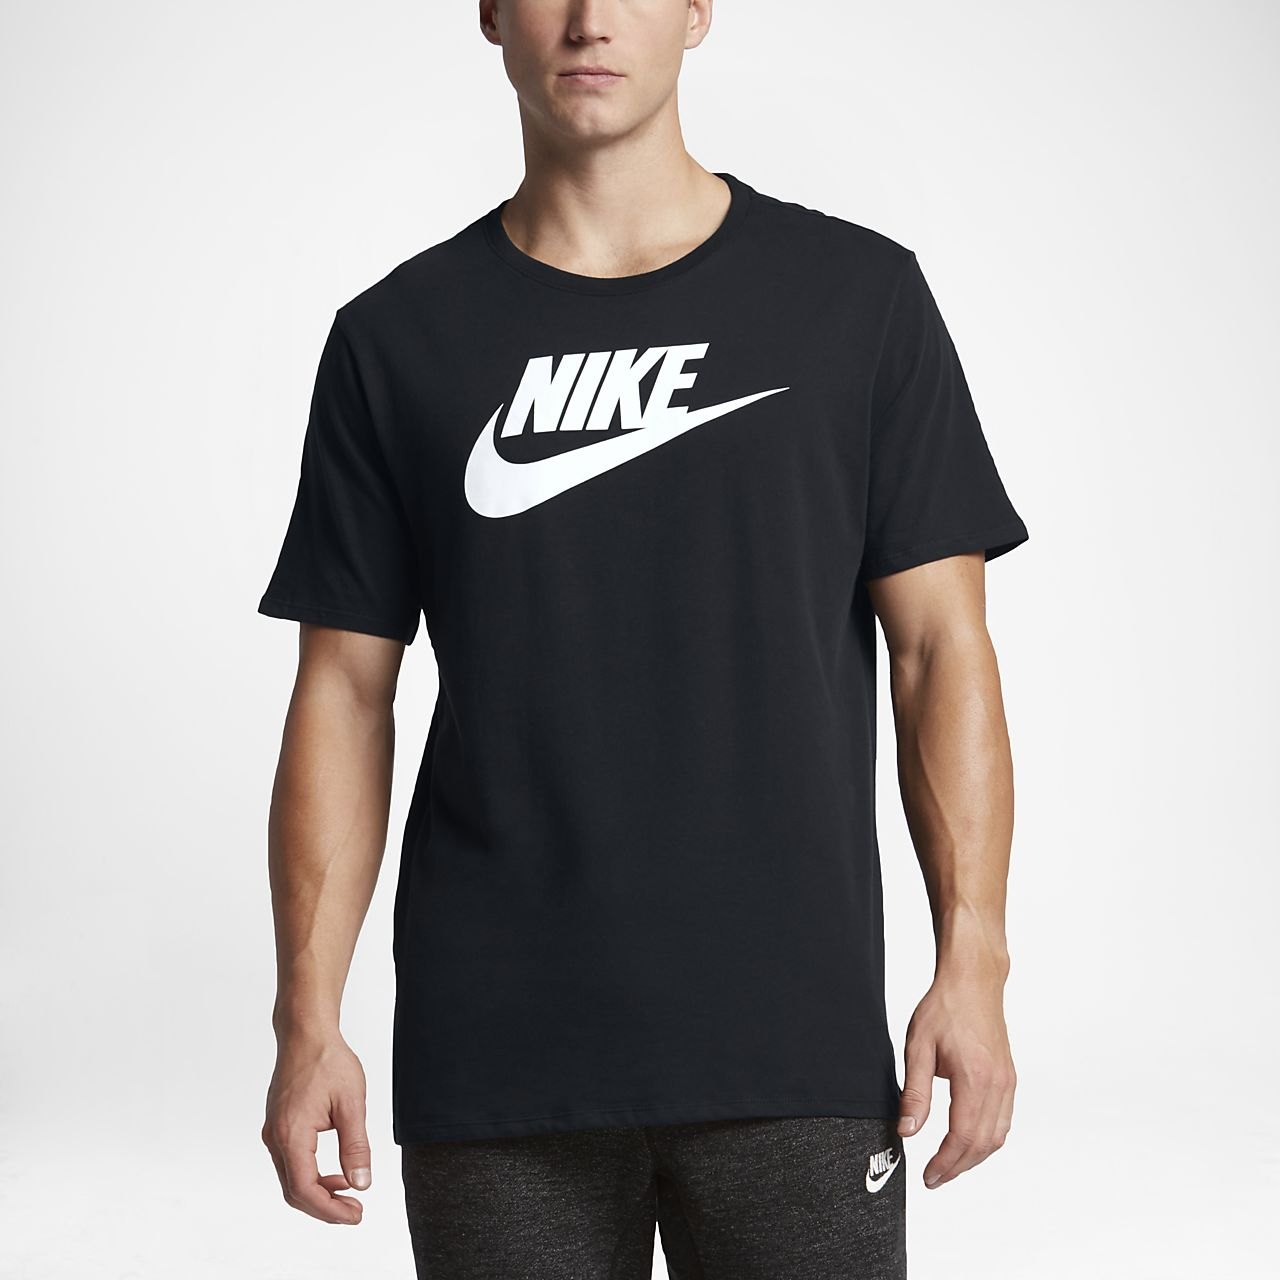 Nike sportswear men 39 s logo t shirt ma for Nike flyknit t shirt